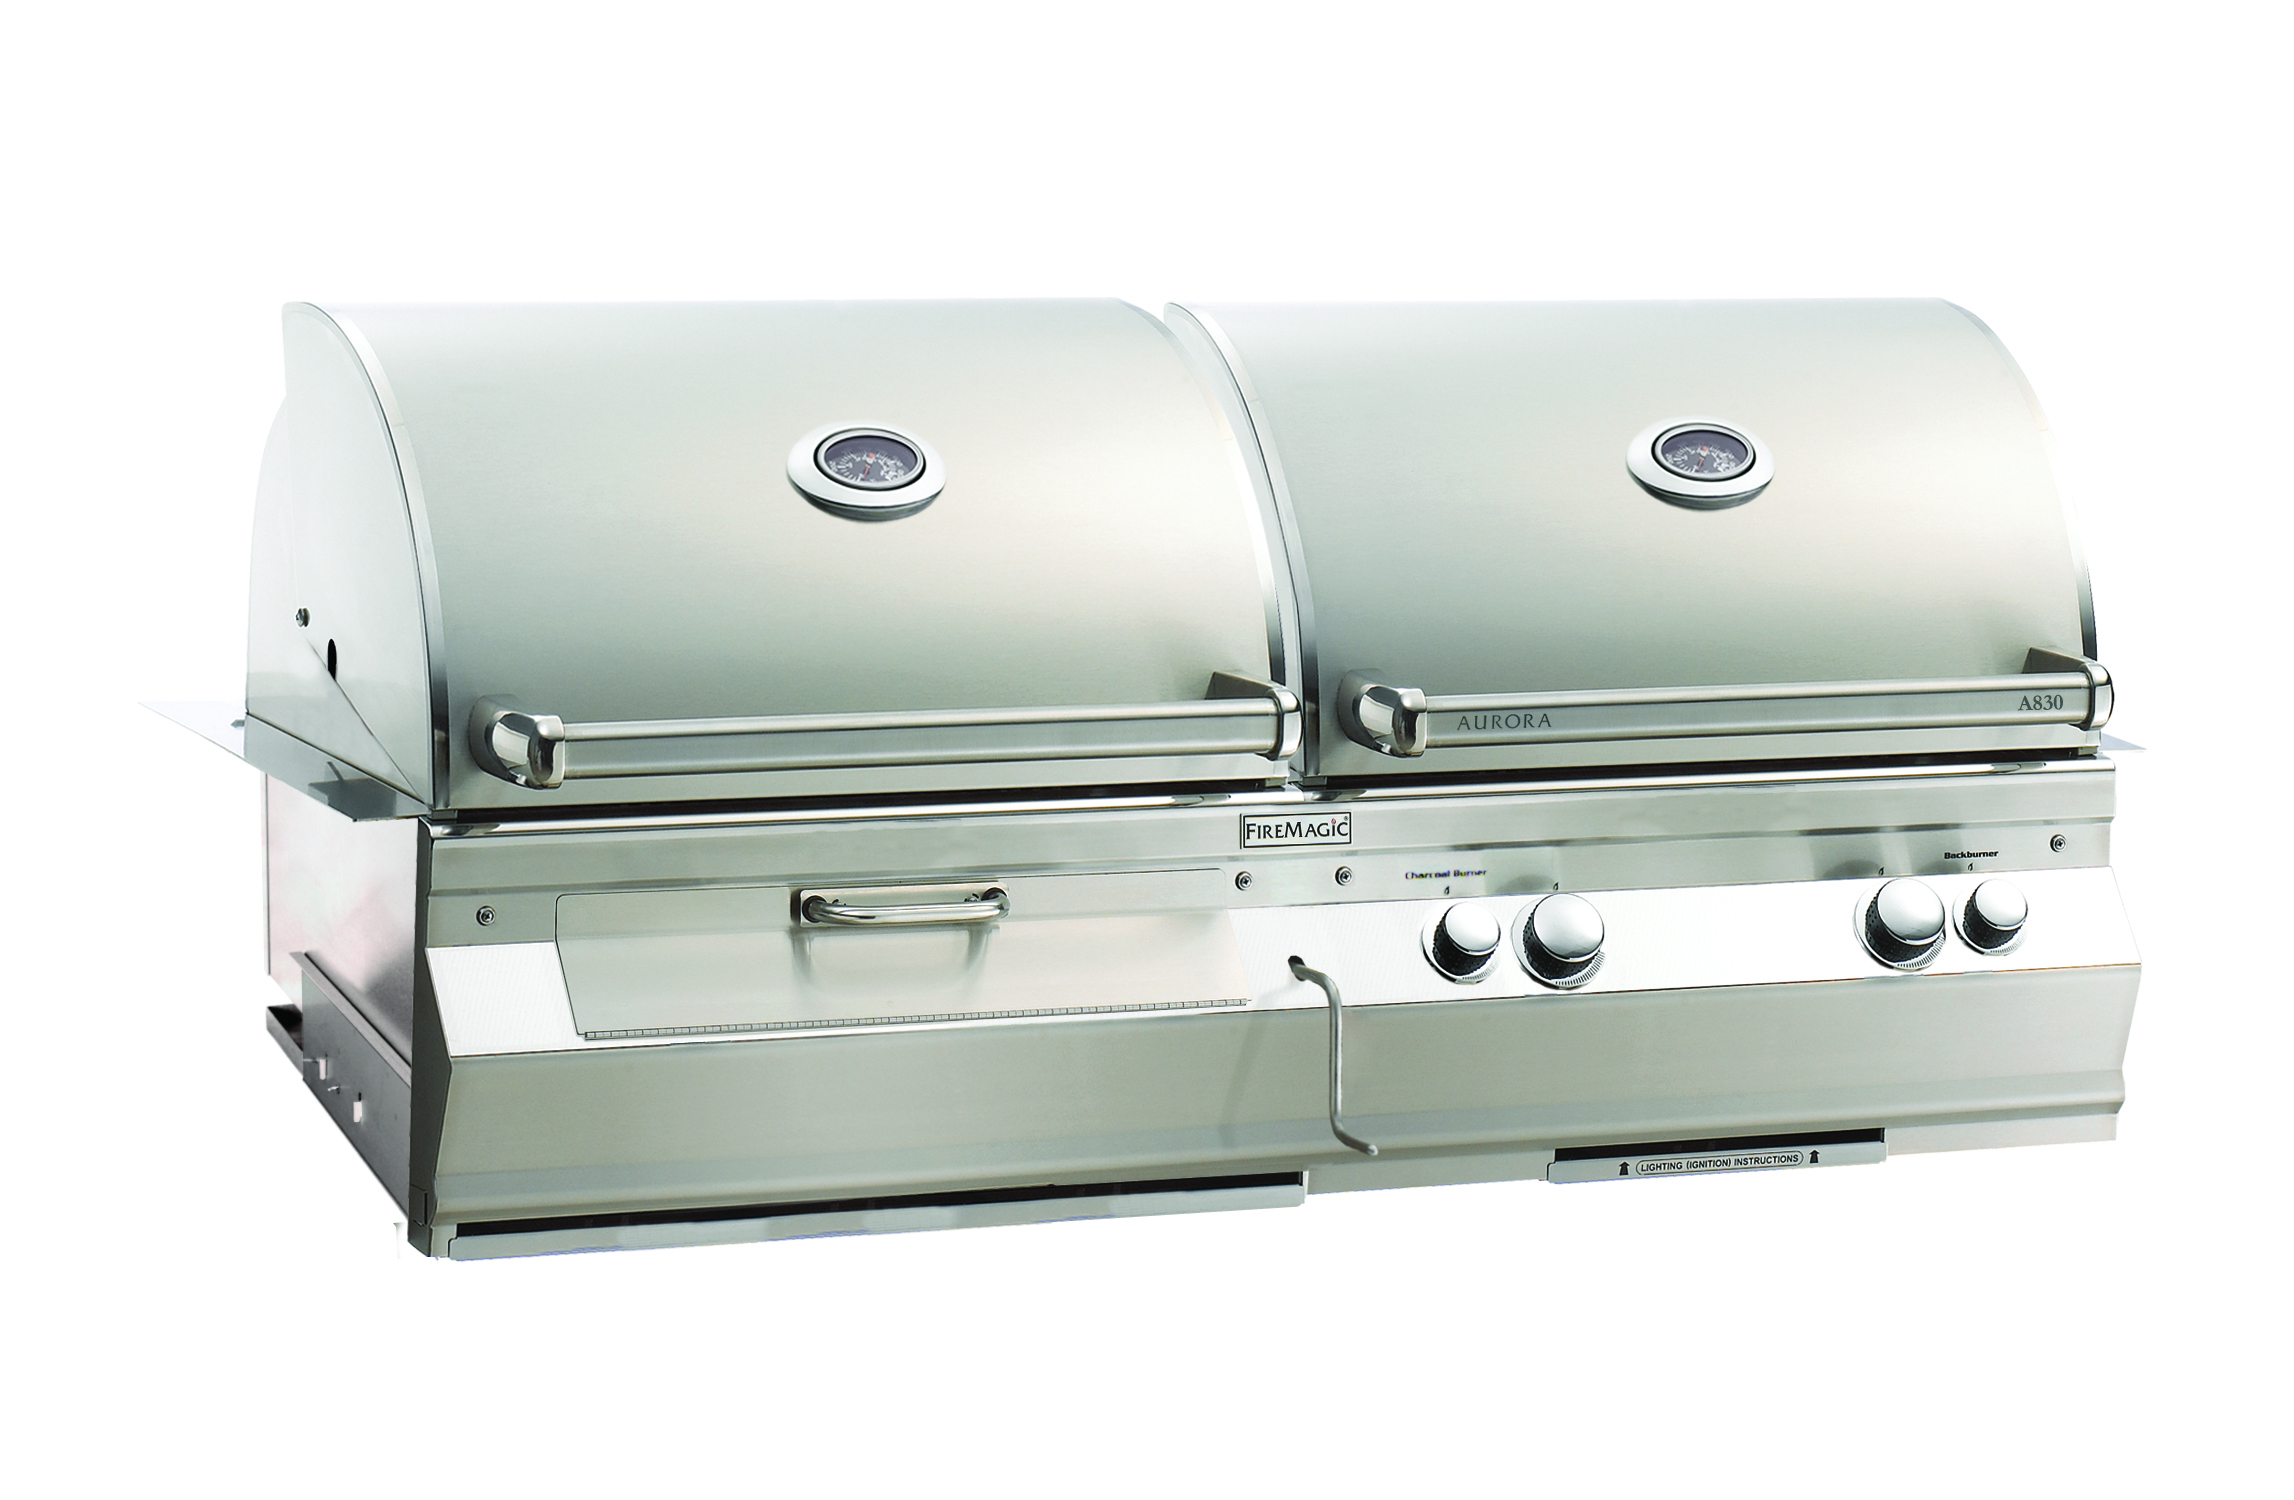 fm-a830i-aurora-combo-built-in-grill.jpg